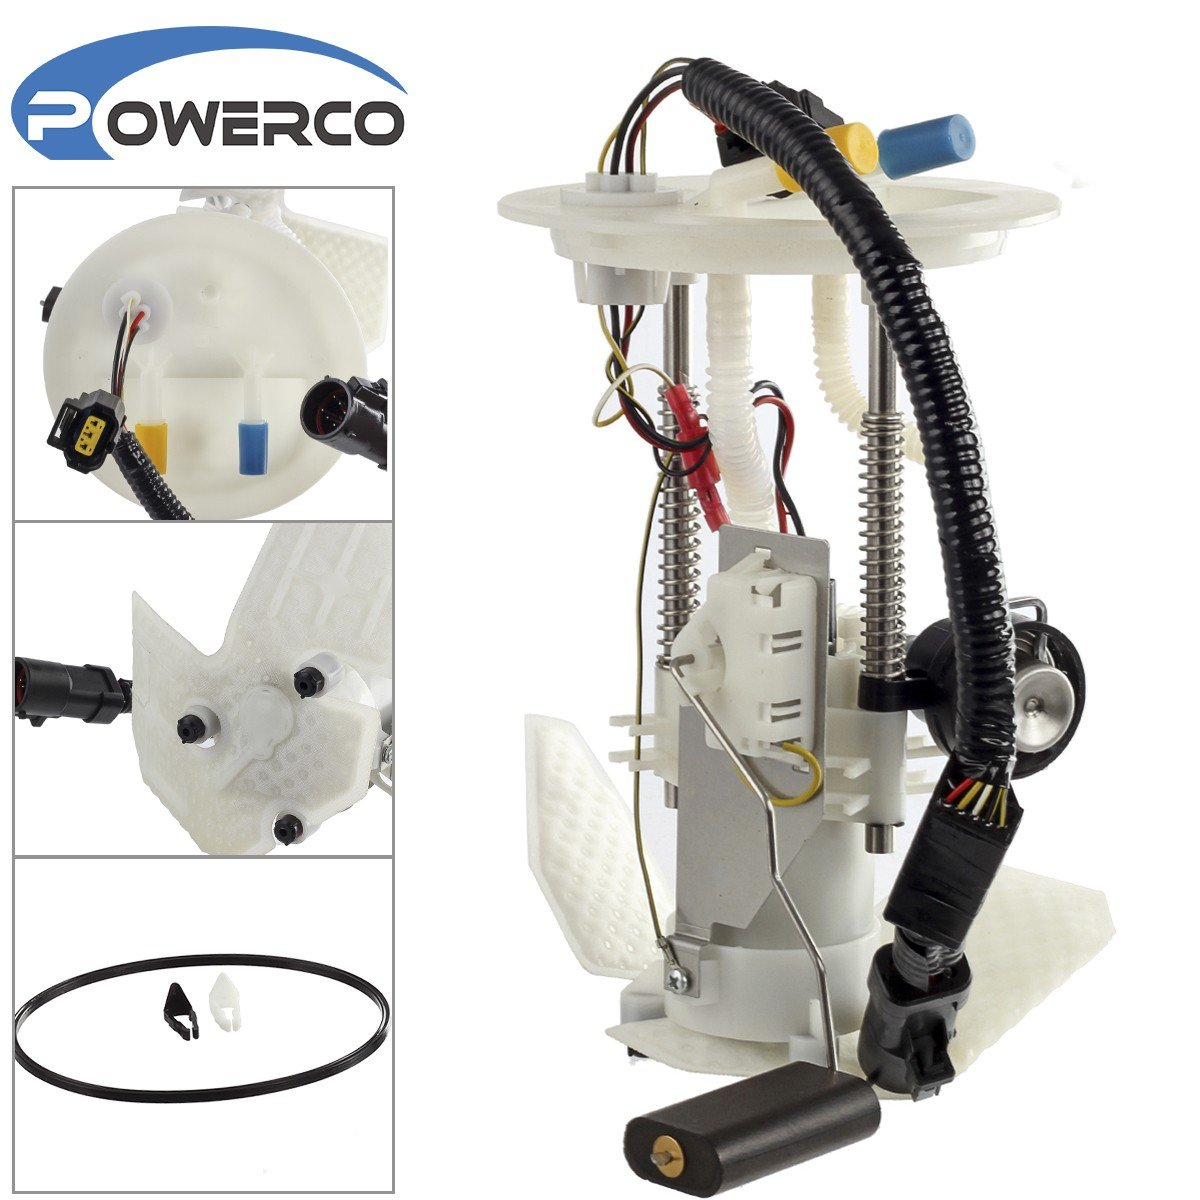 Amazon.com: POWERCO Electric Fuel Pump Module Assembly for 2002 2003 FORD  EXPLORER V6-4.0, 2002 MERCURY MOUNTAINEER V6-4.0L with Sending Unit E2338M  ...